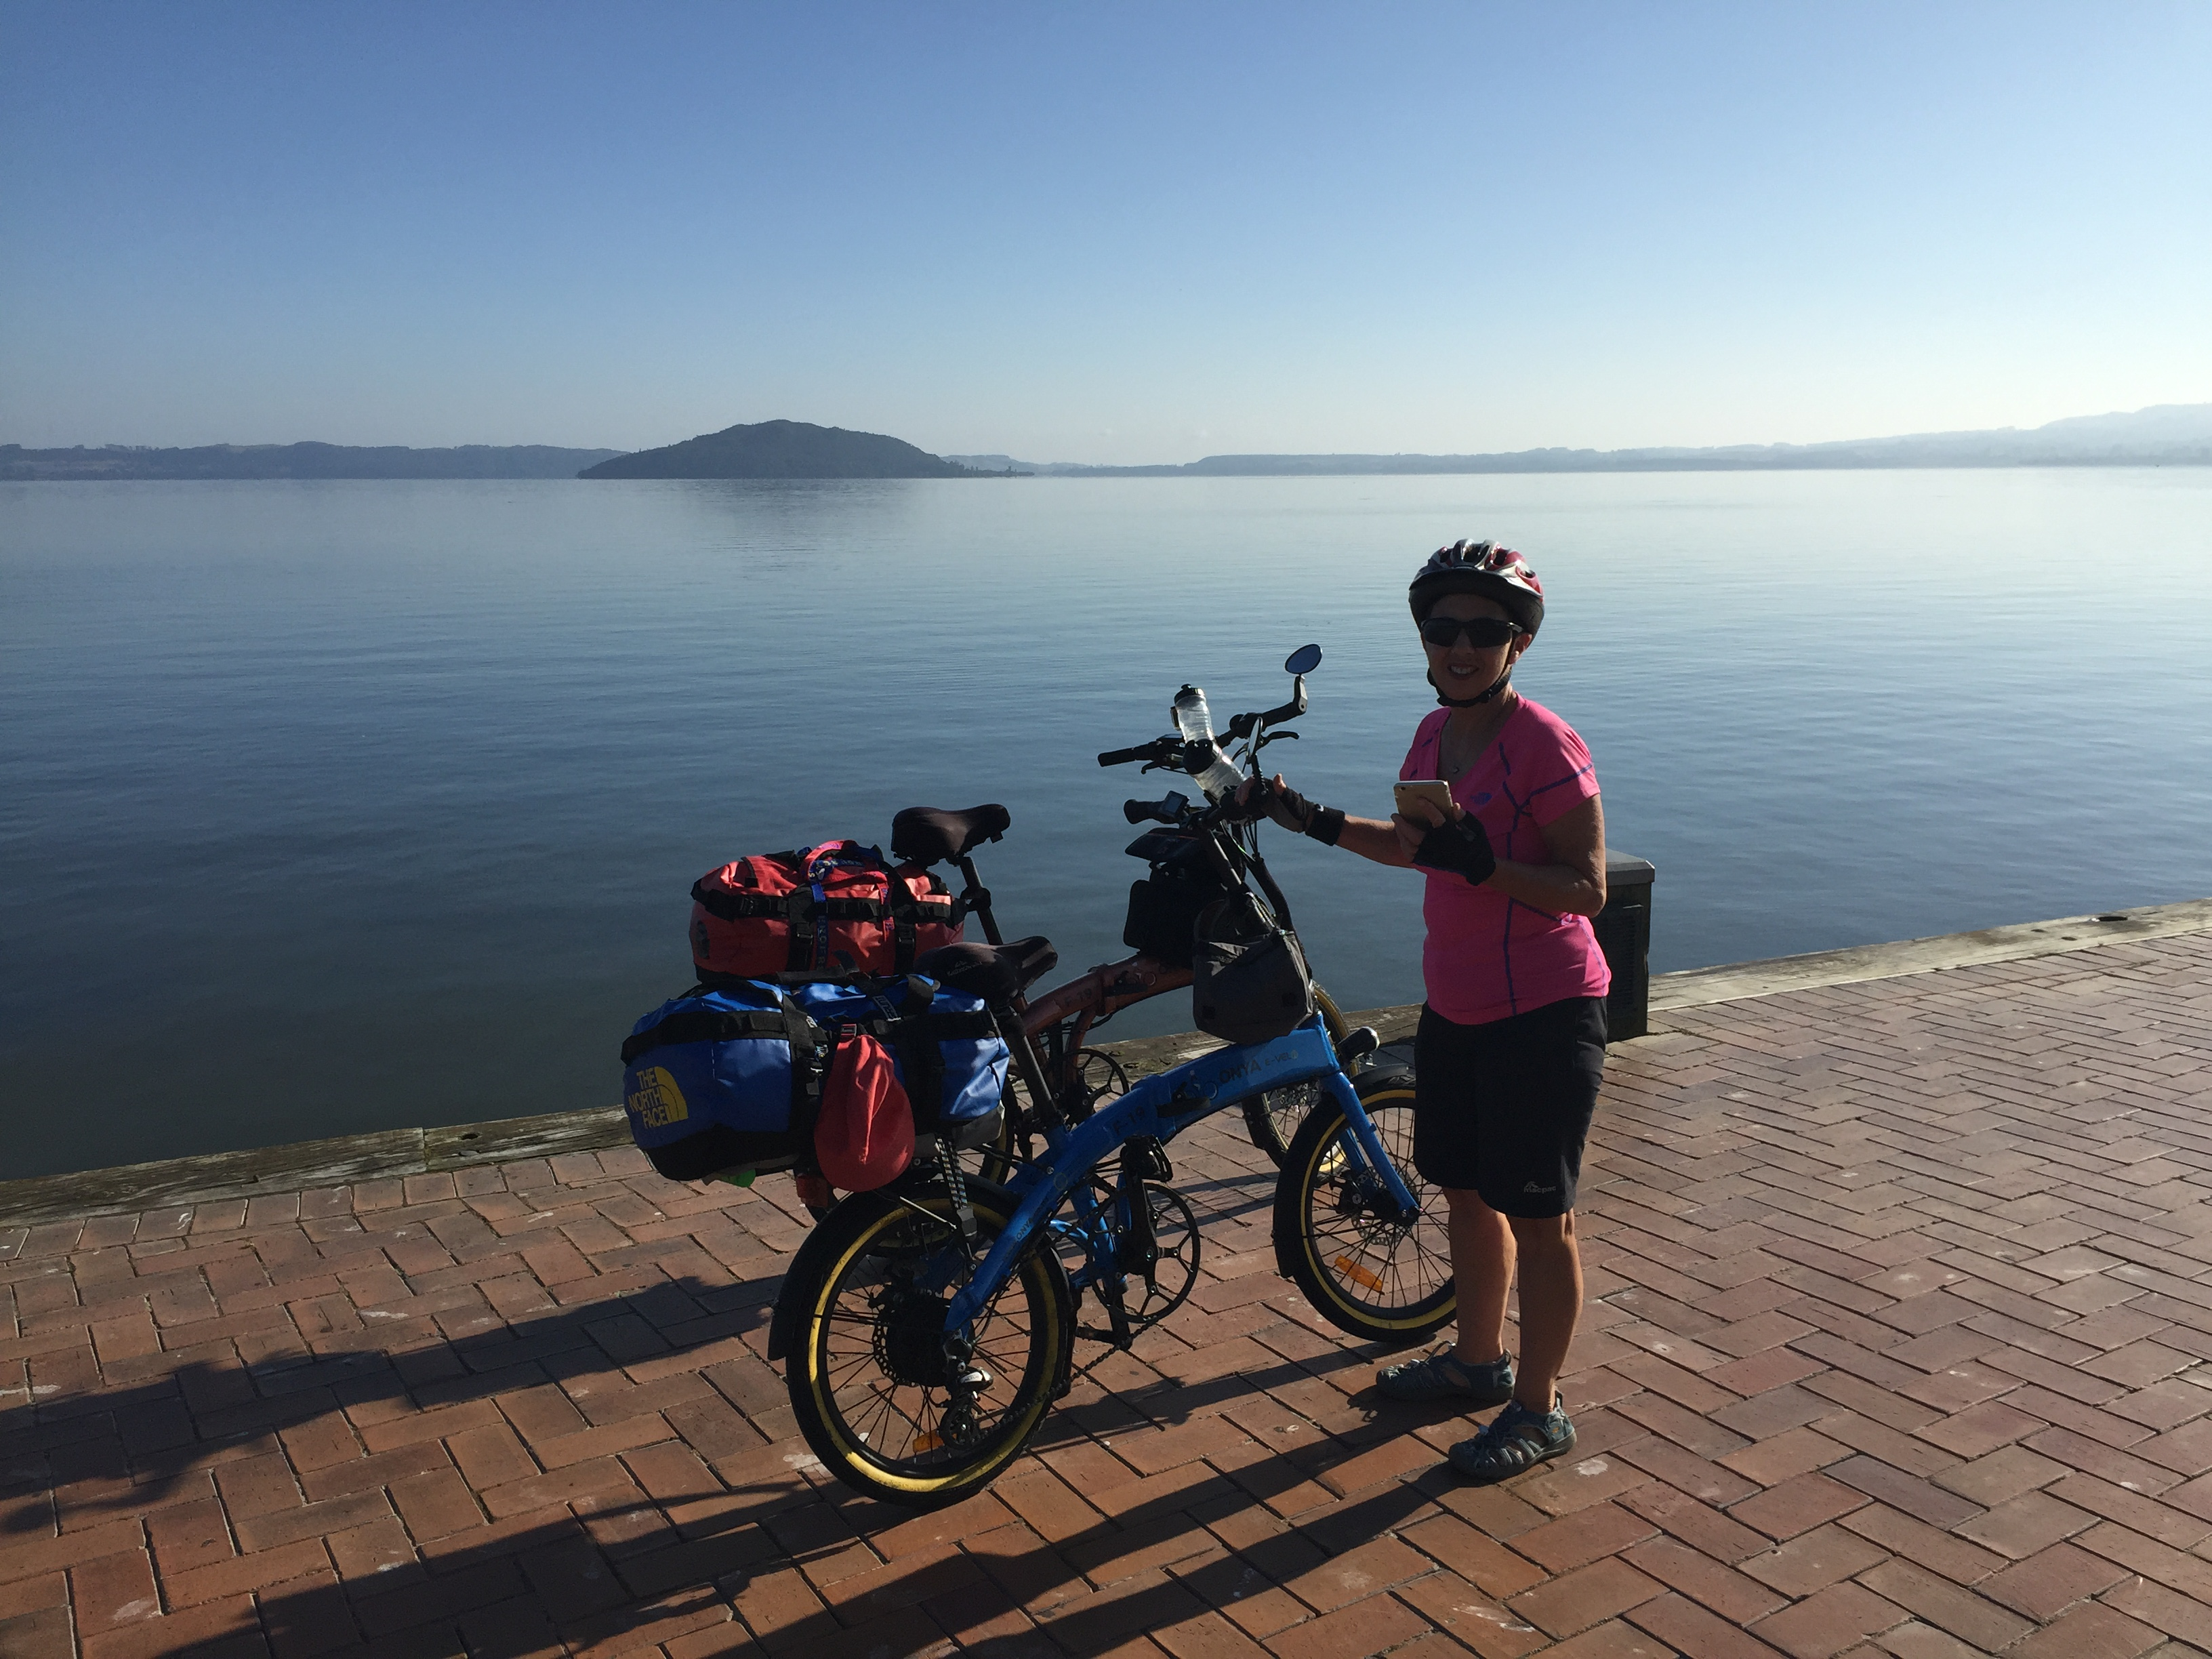 Bike trip: Stage 1 to Taupo